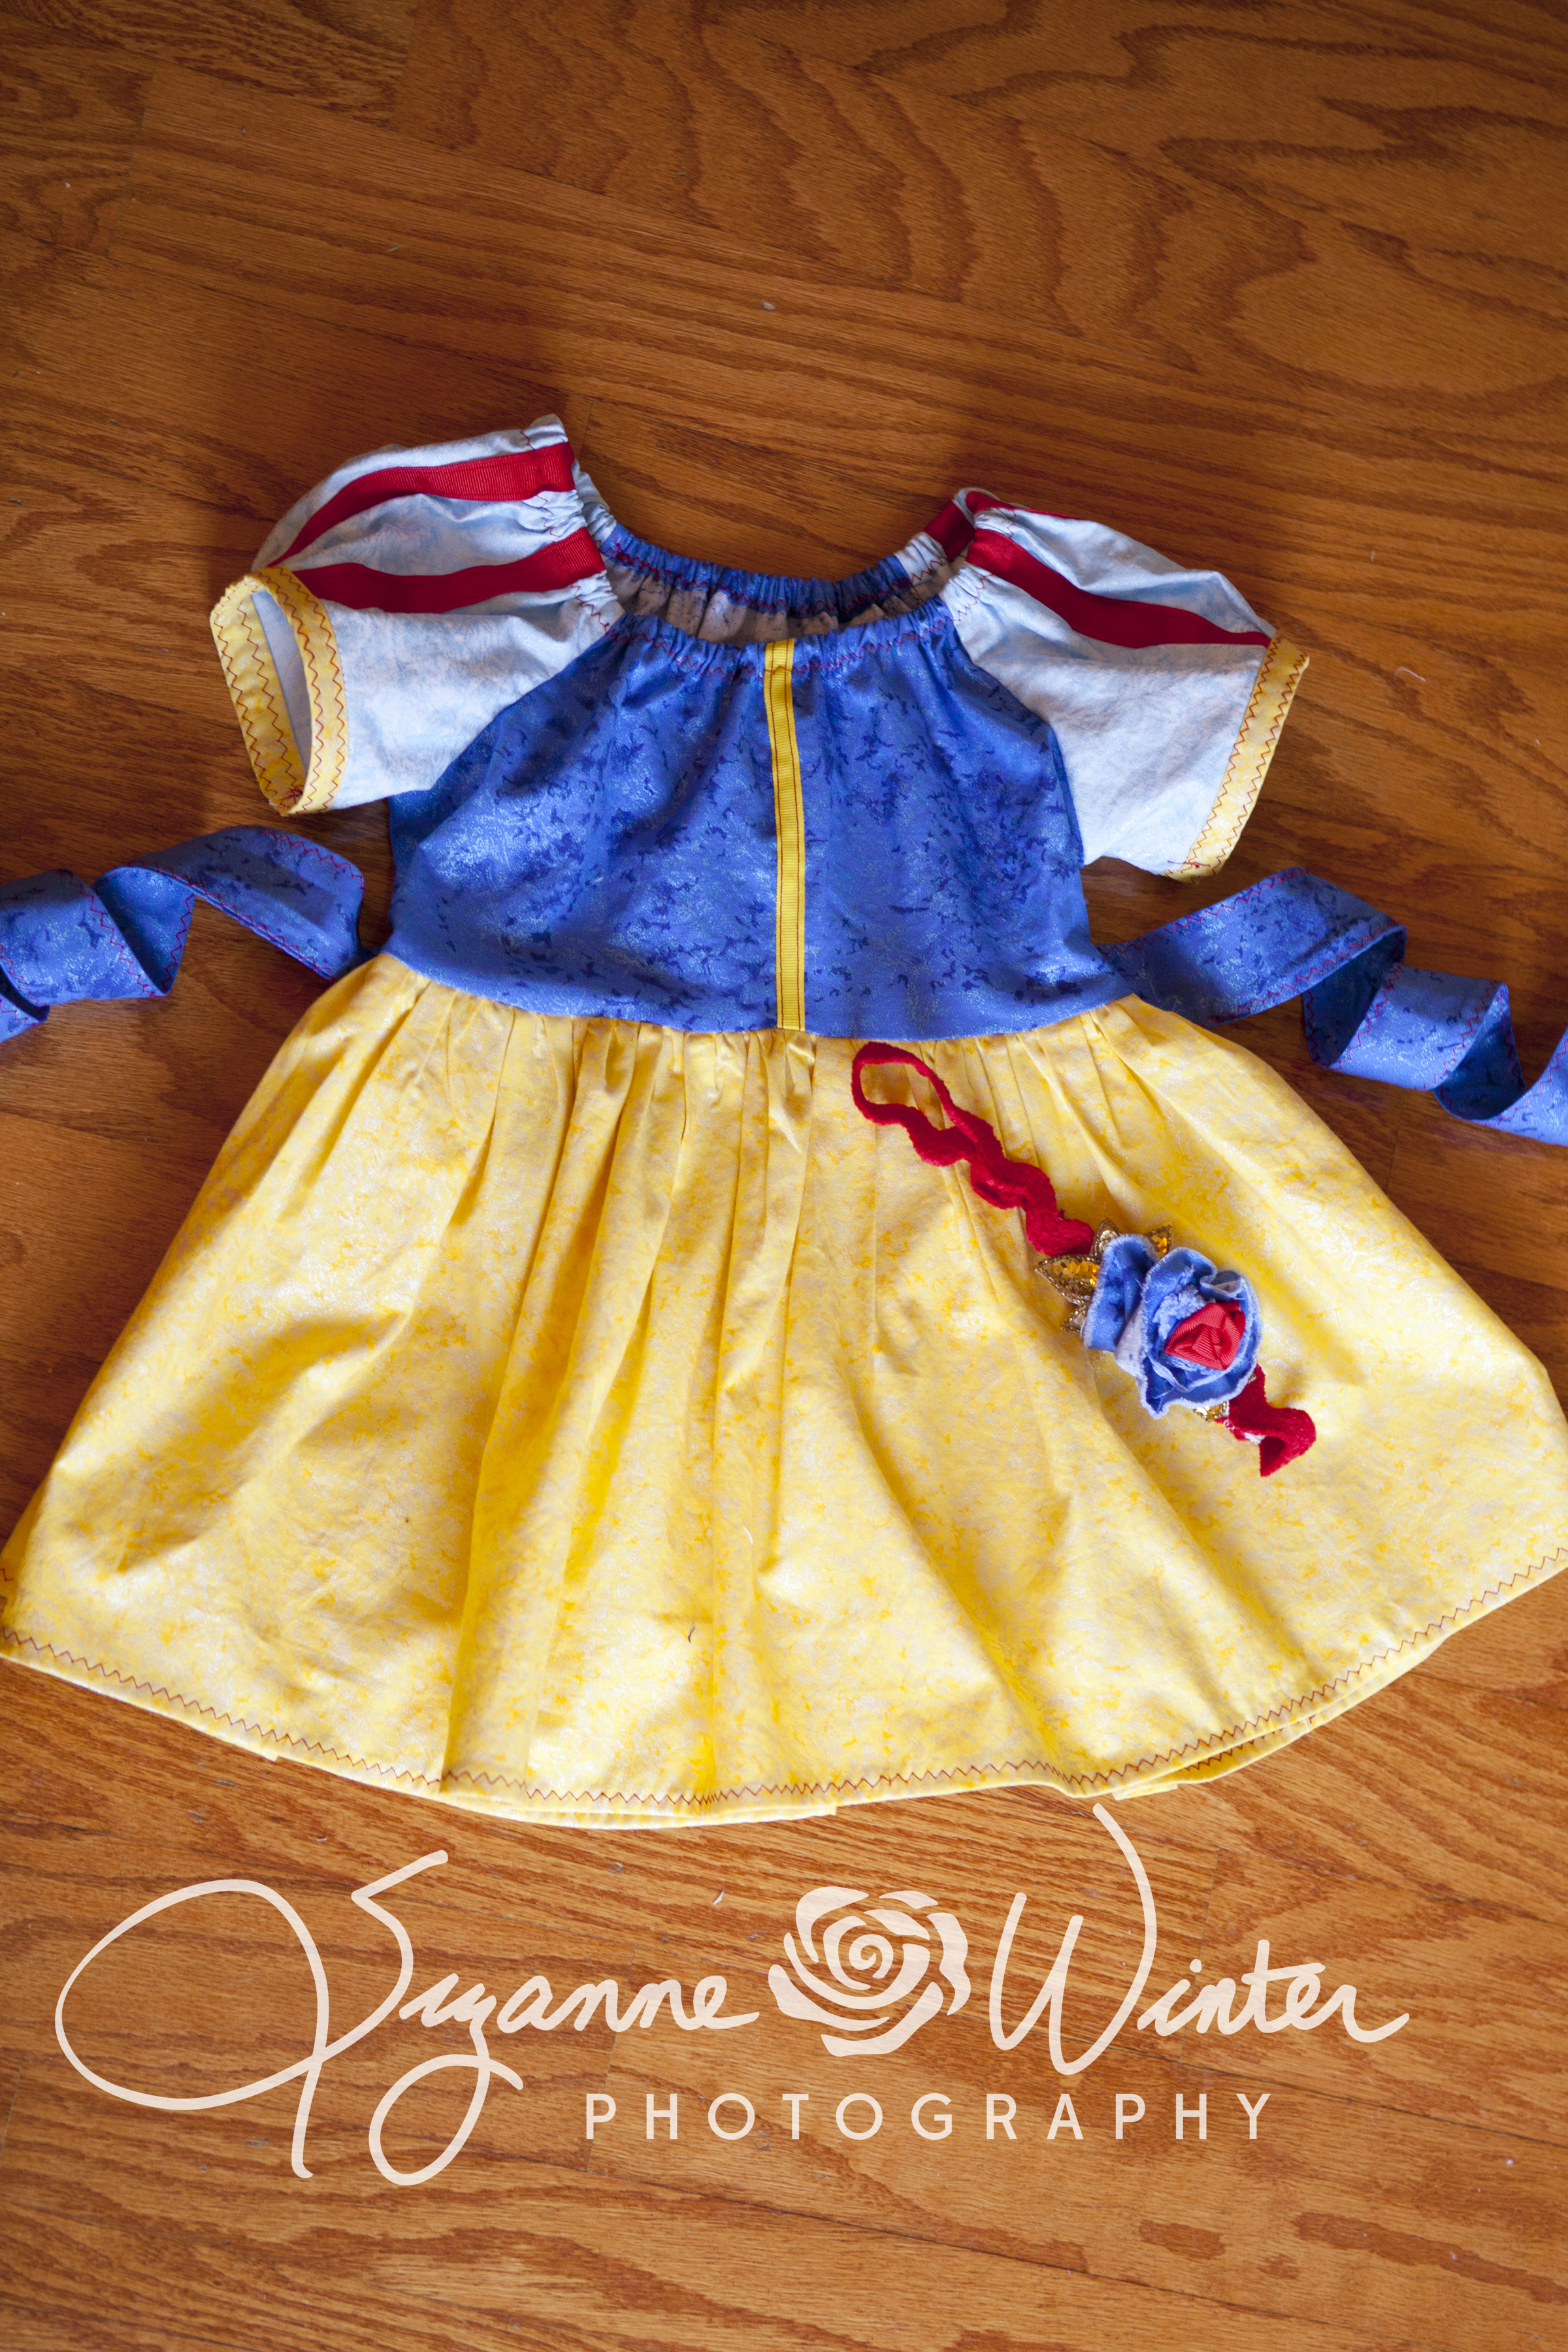 Kits Fit for a Princess: Snow White — Pattern Revolution